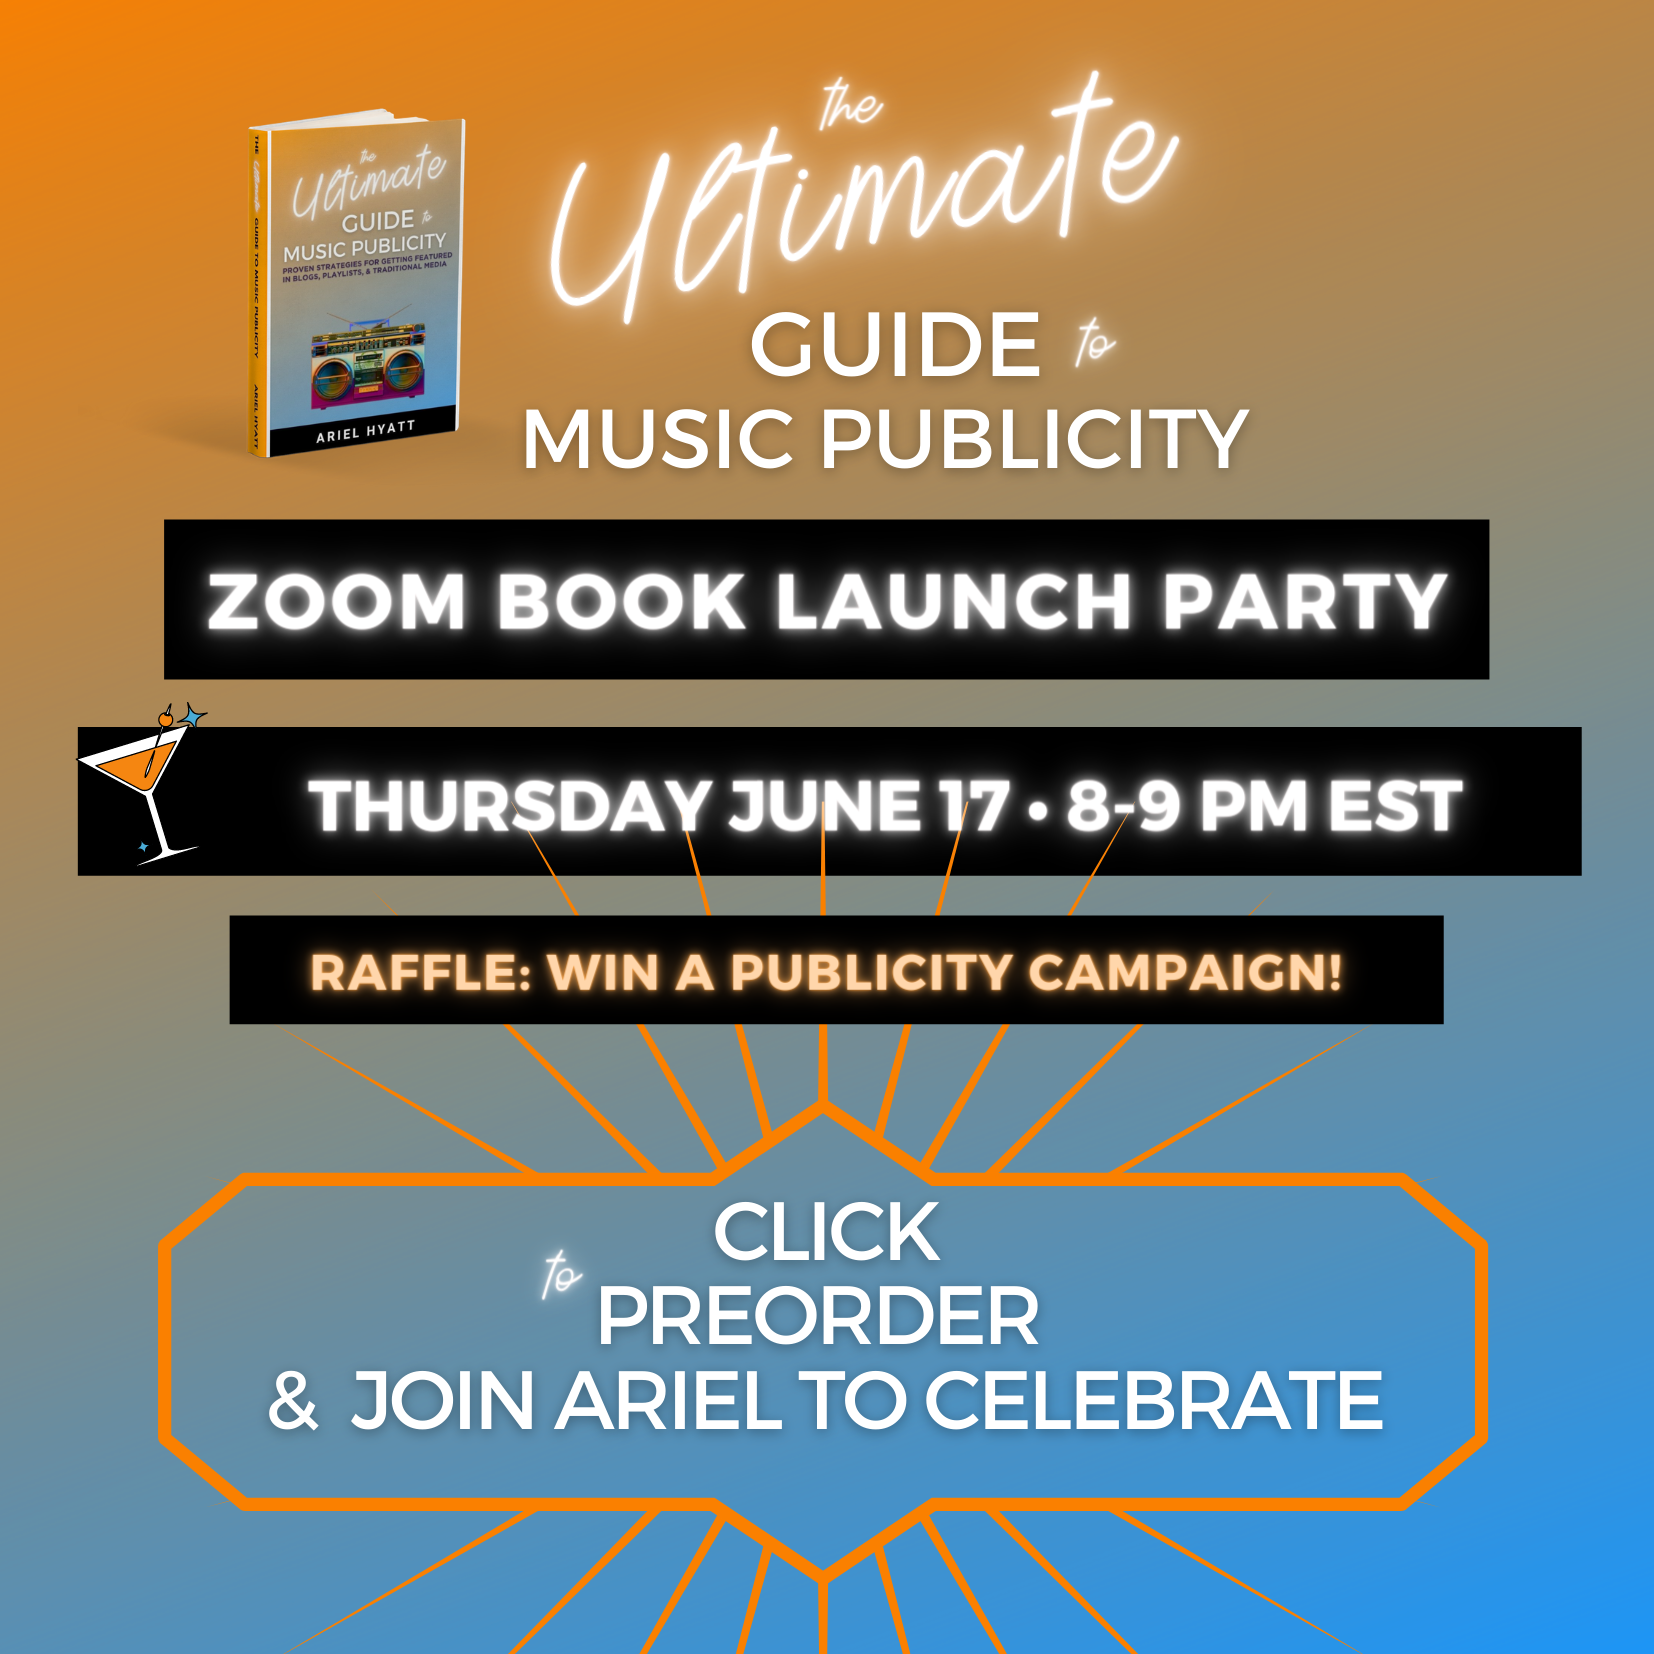 ULTIMATE GUIDE TO MUSIC PUBLICITY BOOK LAUNCH PARTY